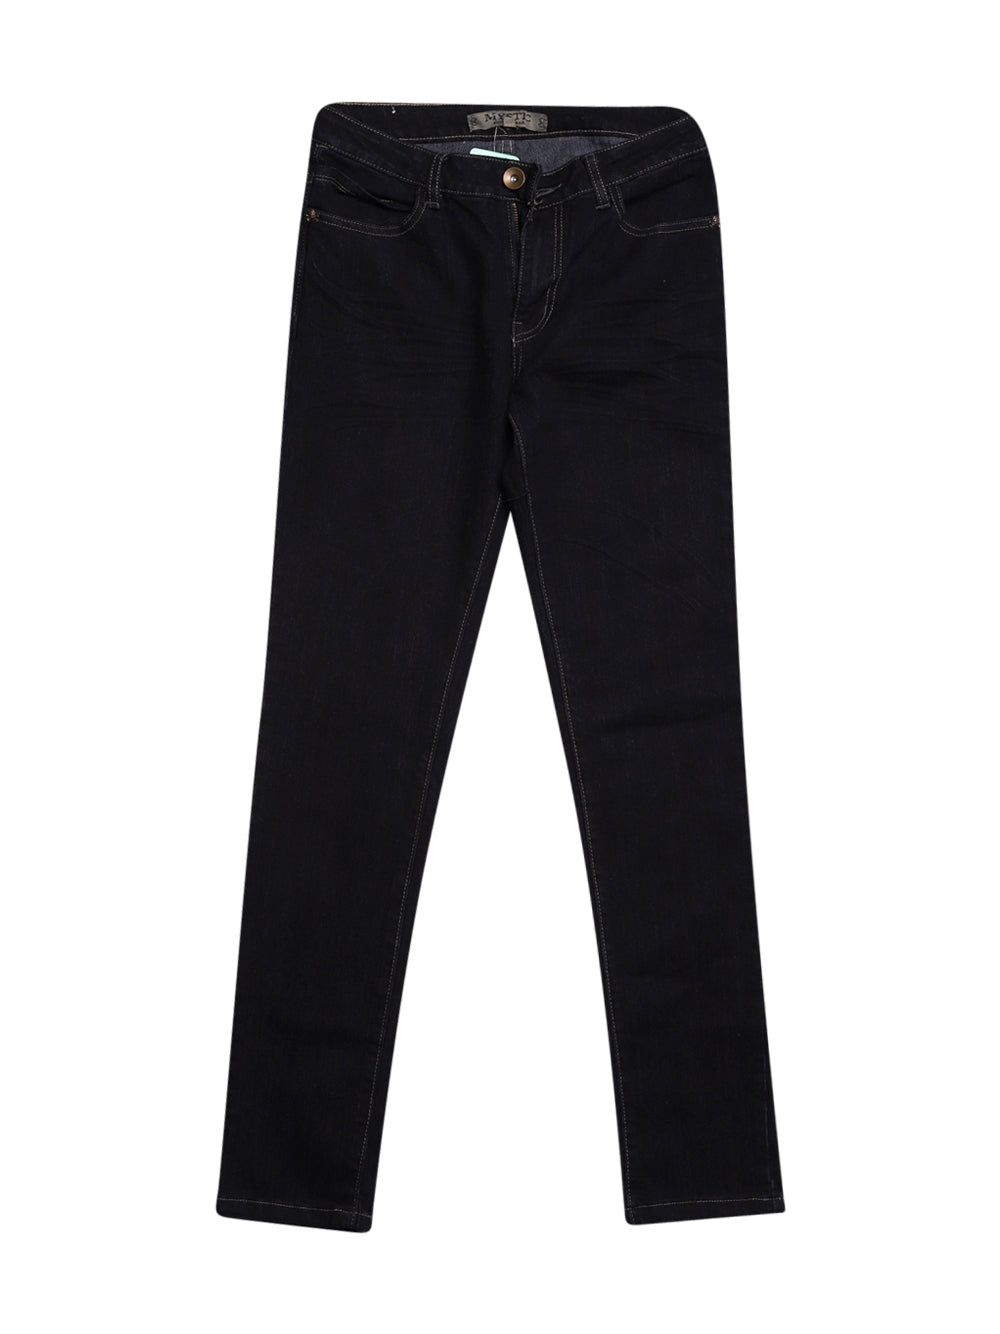 Front photo of Preloved mystic Black Woman's trousers - size 6/XS